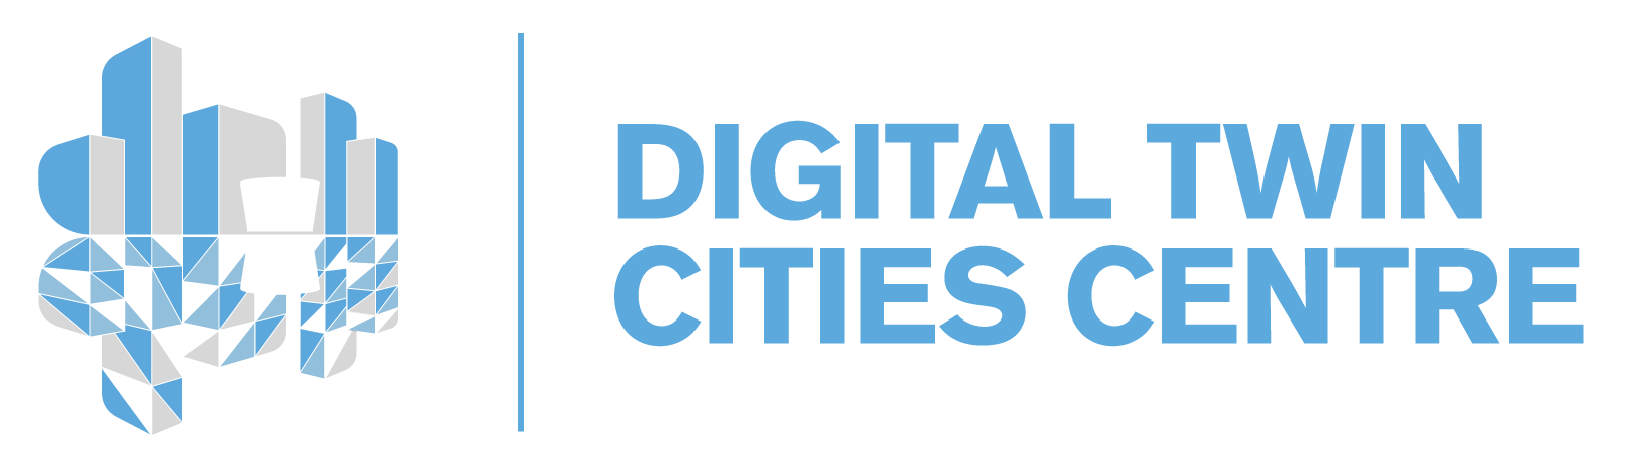 Digital Twin Cities Centre